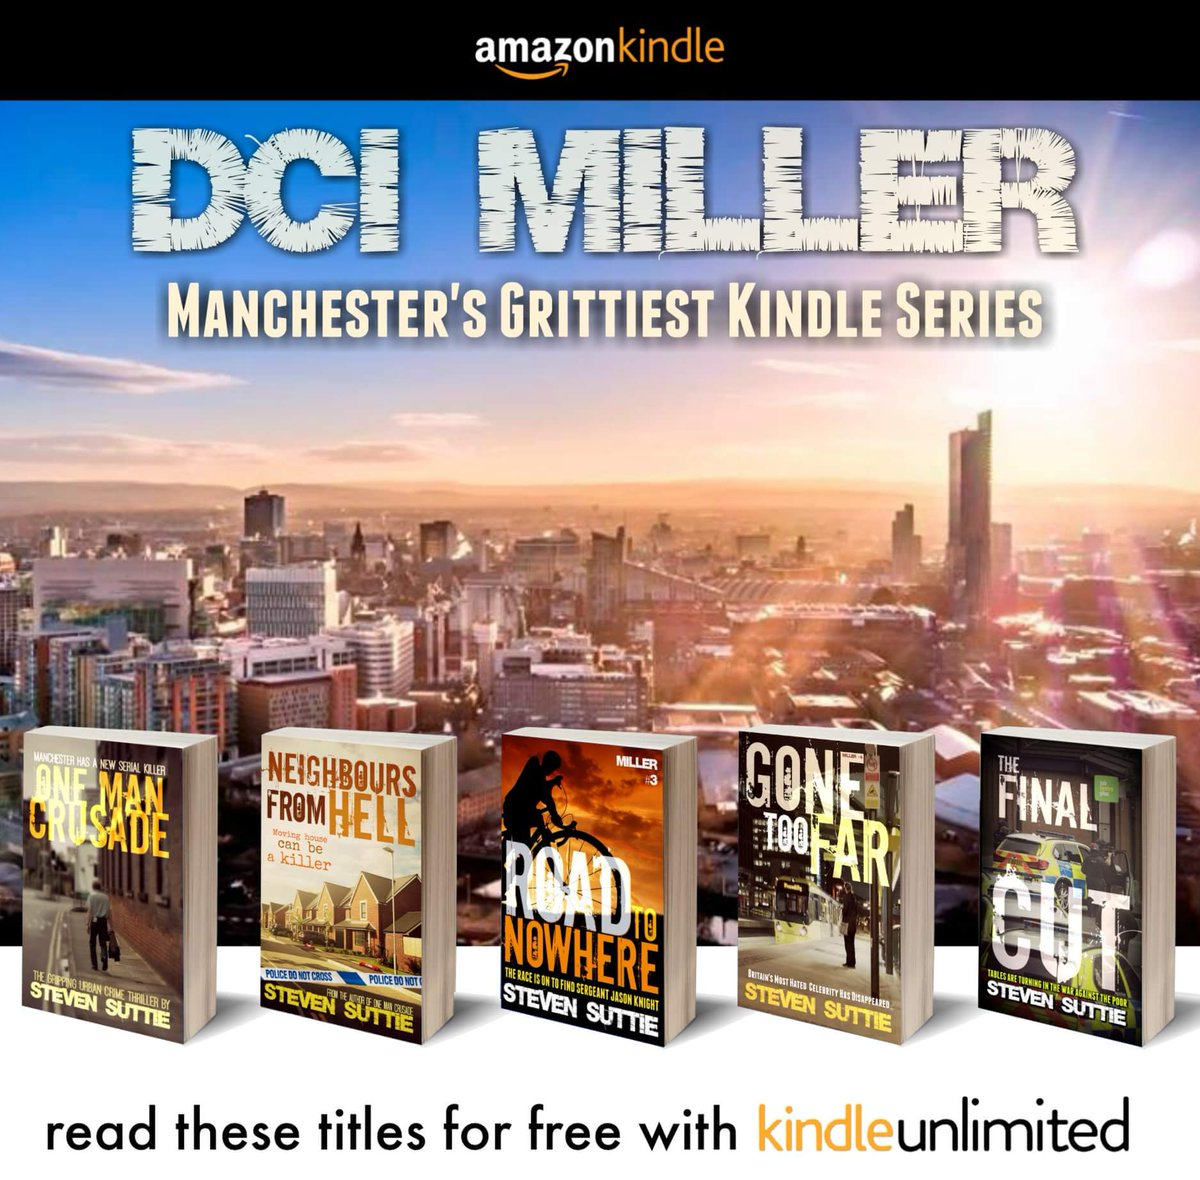 DCI Miller  Manchester&#39;s grittiest, most exciting #kindle detective   https://www. amazon.co.uk/s/ref=nb_sb_no ss_2?url=search-alias%3Daps&amp;field-keywords=dci+miller &nbsp; …  Free on #KindleUnlimited #manc #mancmade #stockport #tameside #salford #bolton #trafford #Bury #oldham #rochdale #wigan #Manchester #IARTG #ian1 #asmsg1 #readmcr #manchesterbooks<br>http://pic.twitter.com/N3LwaUU3zk